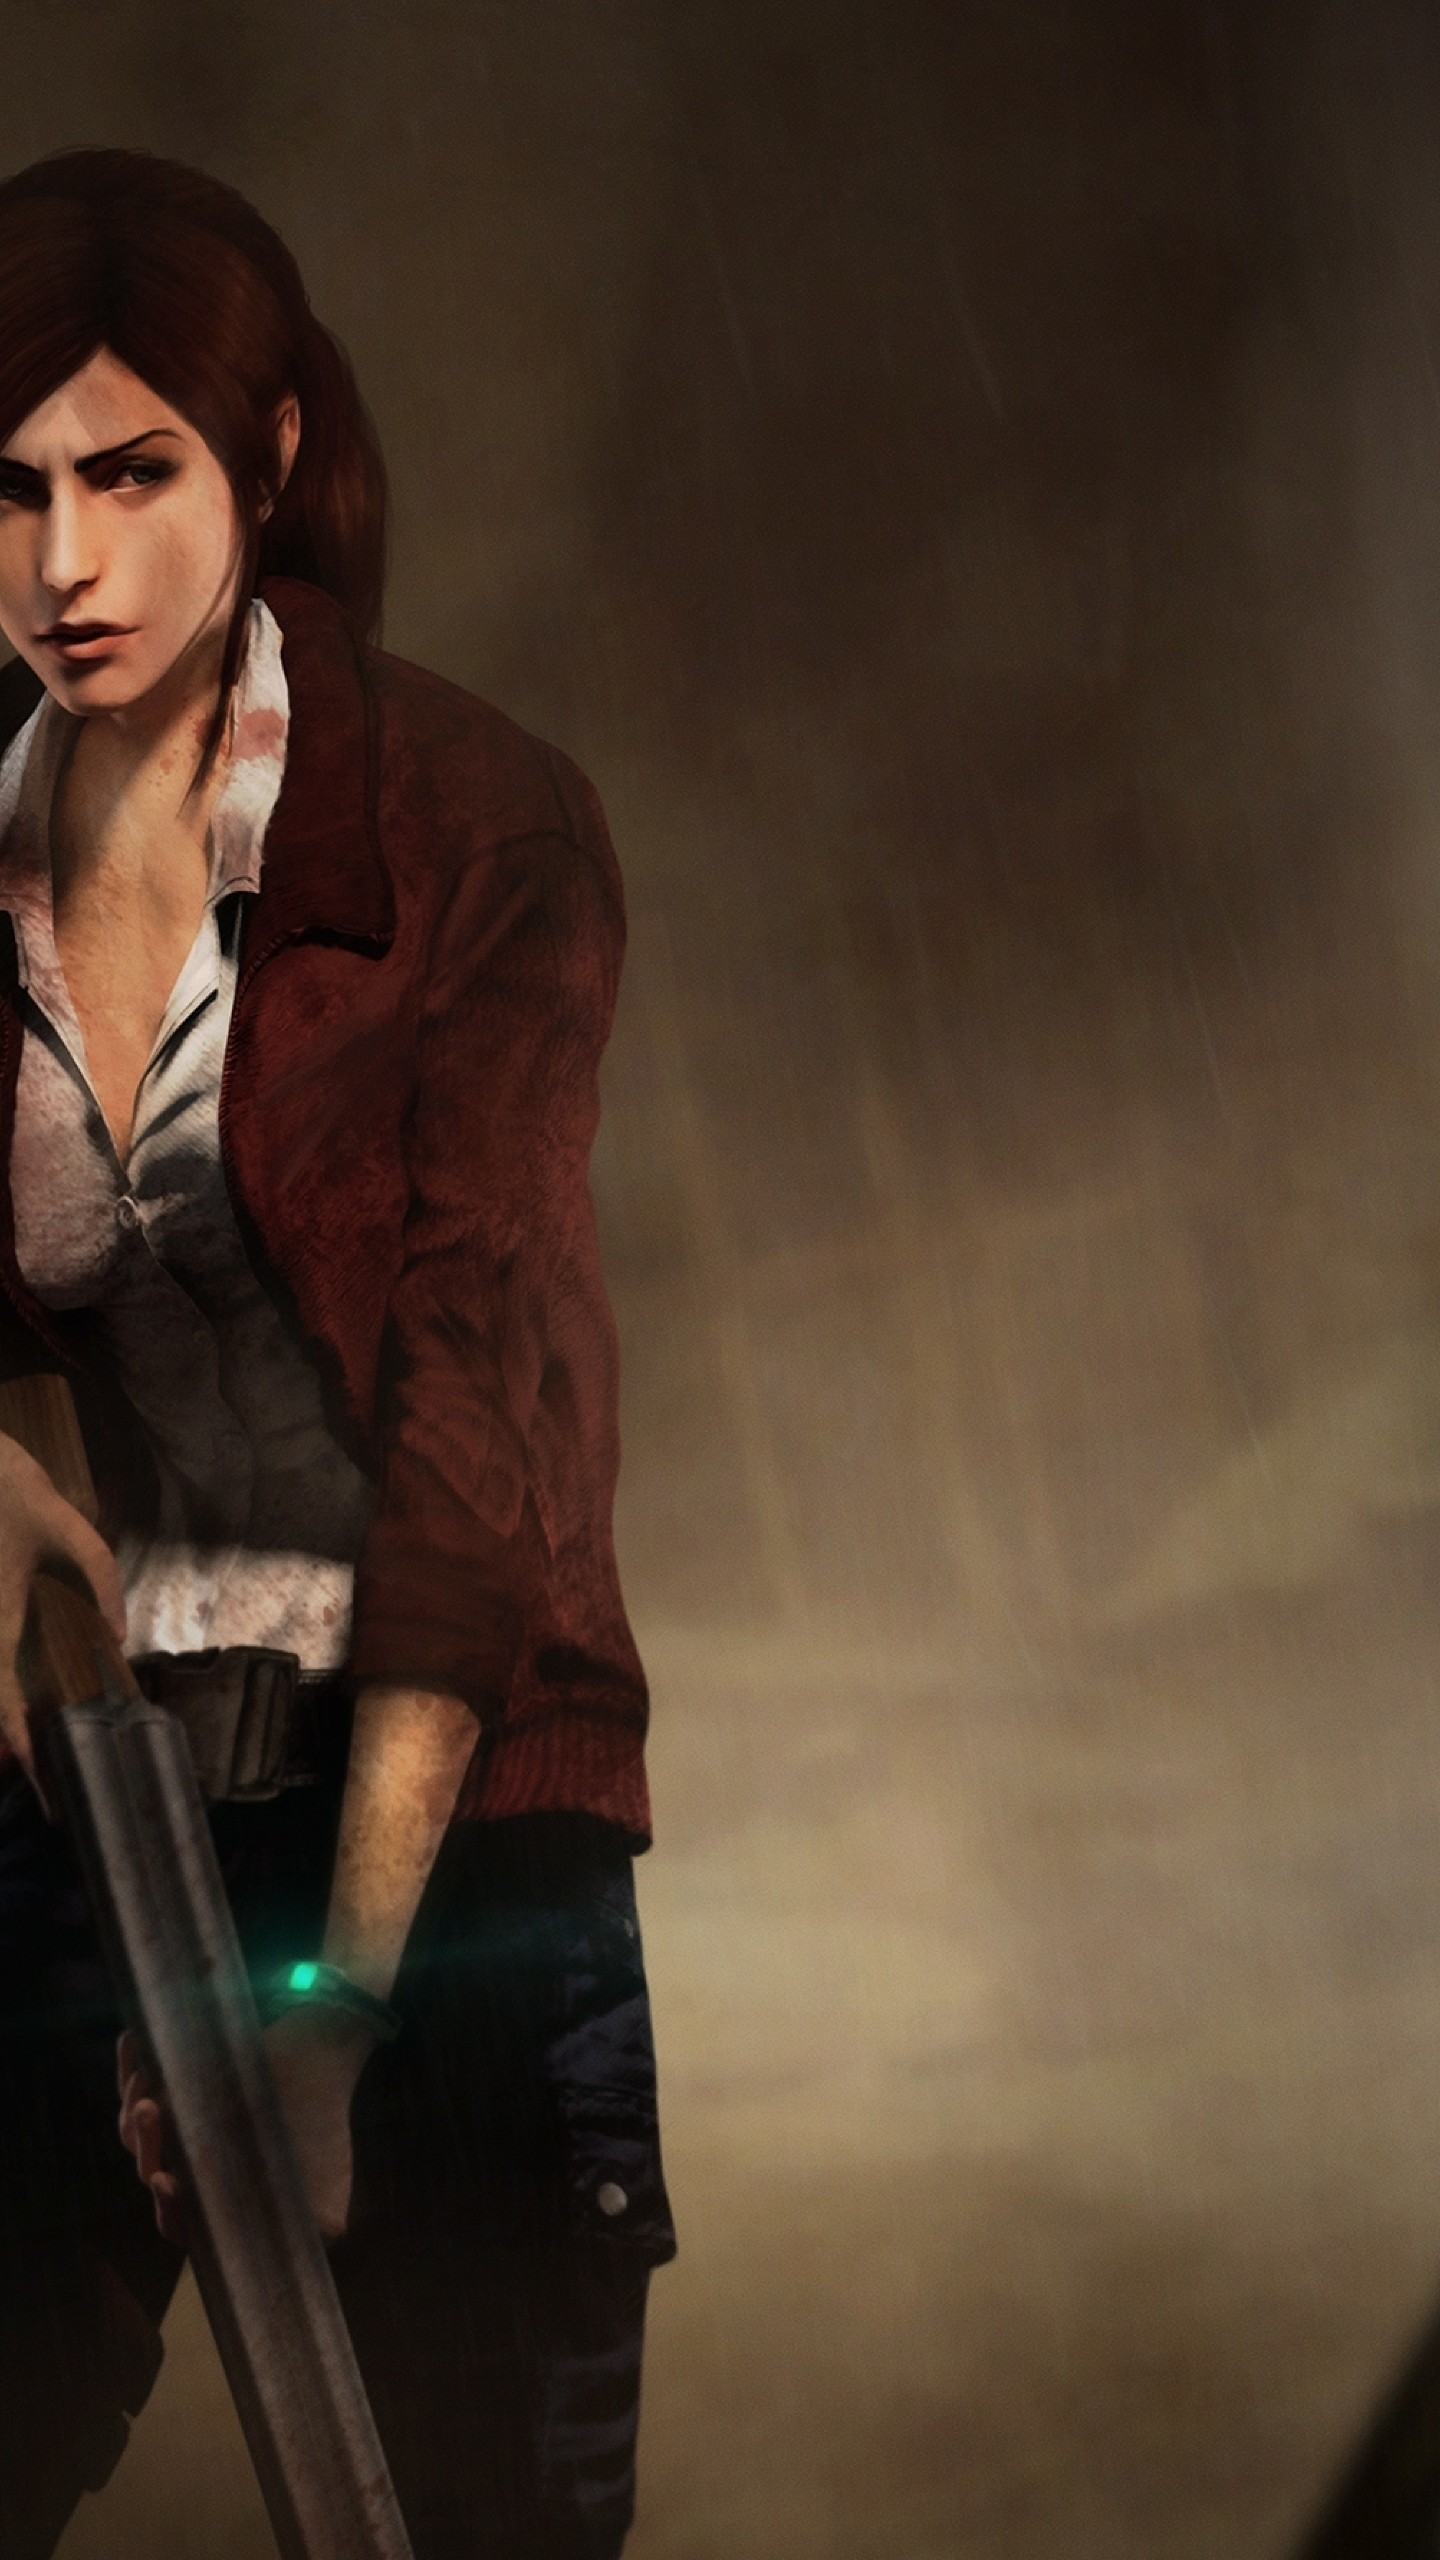 Res: 1440x2560, HD Wallpaper | Background Image resident evil, revelations 2, claire  redfield